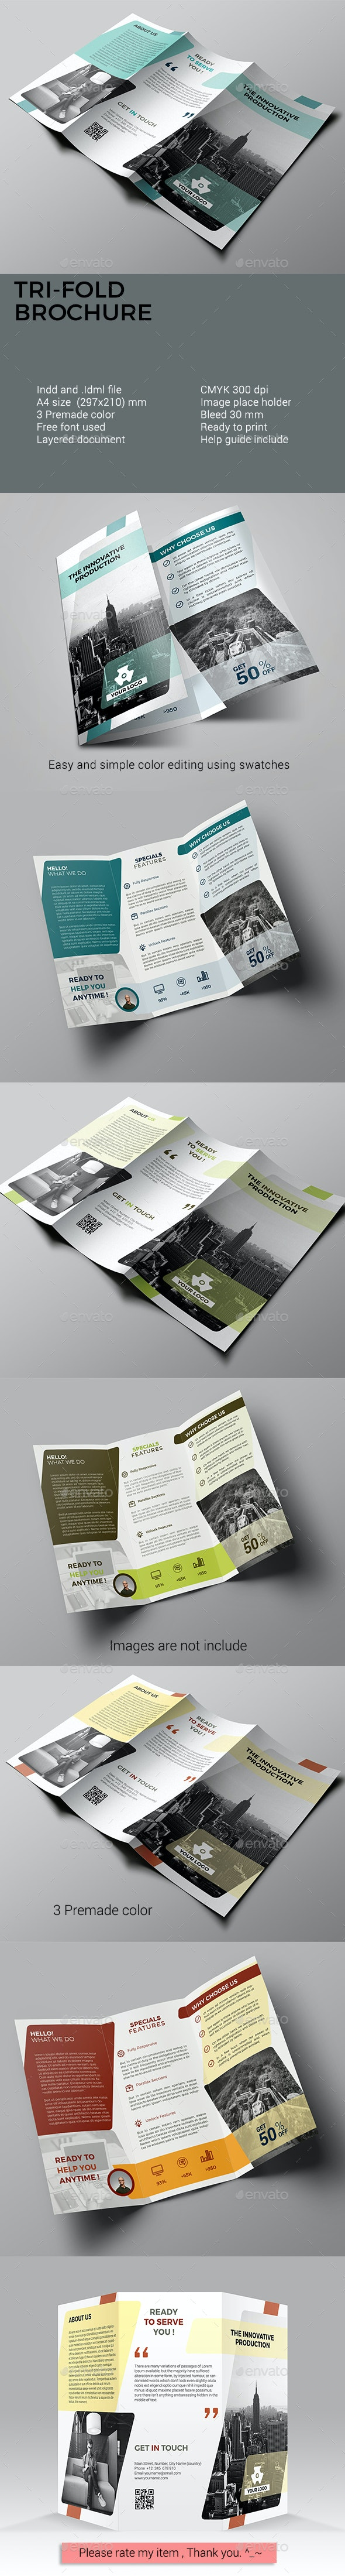 Trifold Brochure - Corporate Business Cards